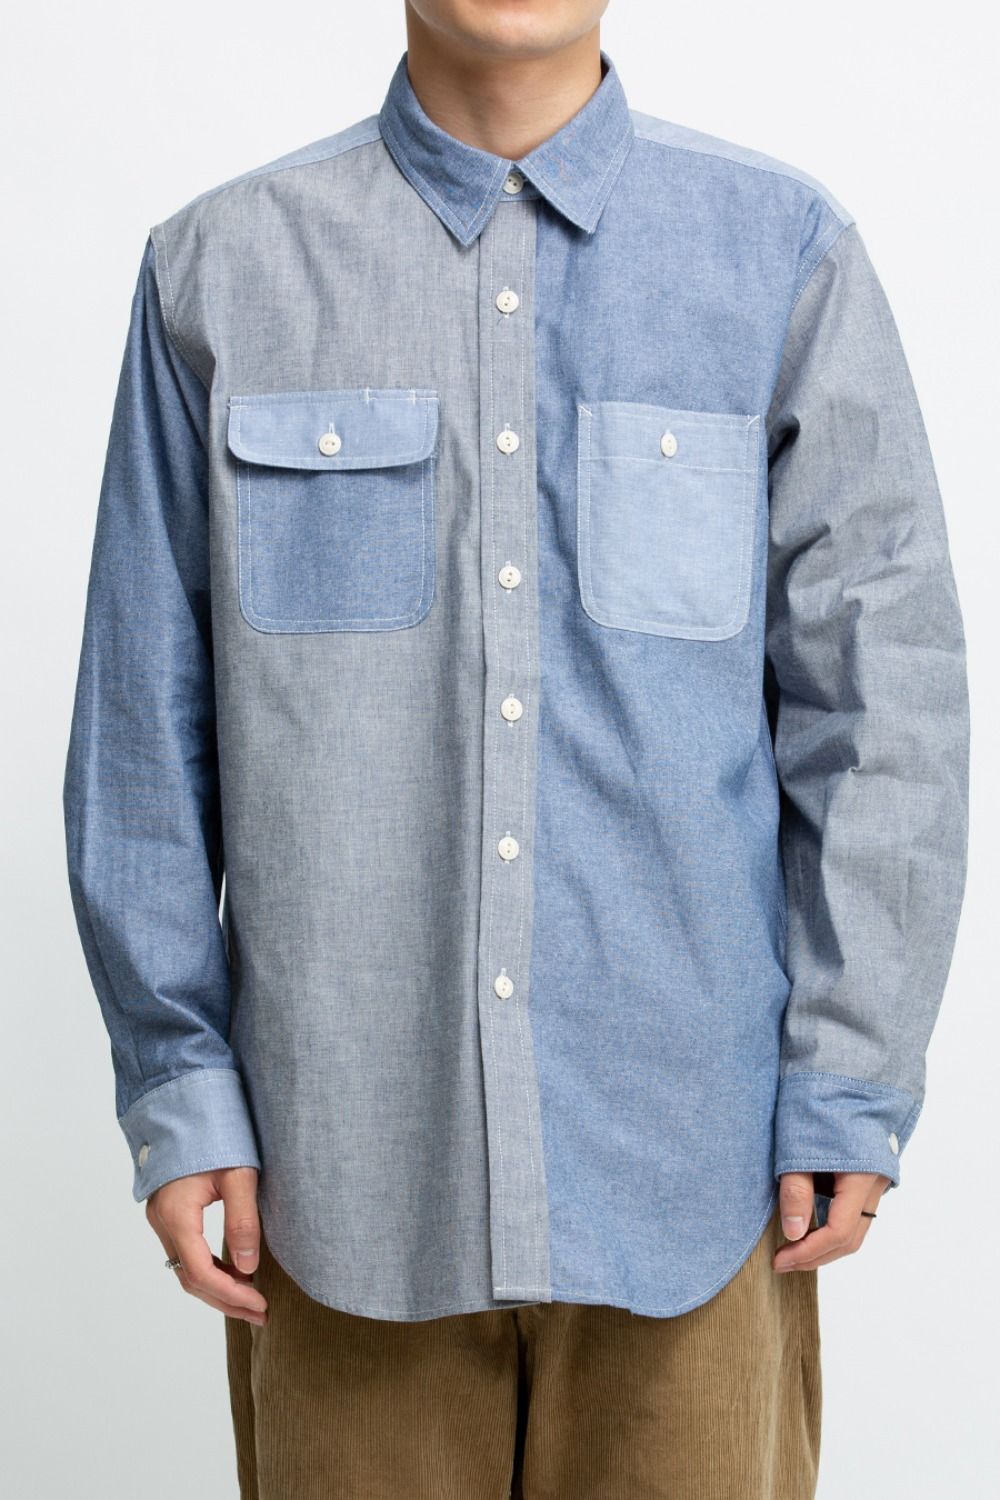 UTILITY SHIRT BLUE COTTON CHAMBRAY